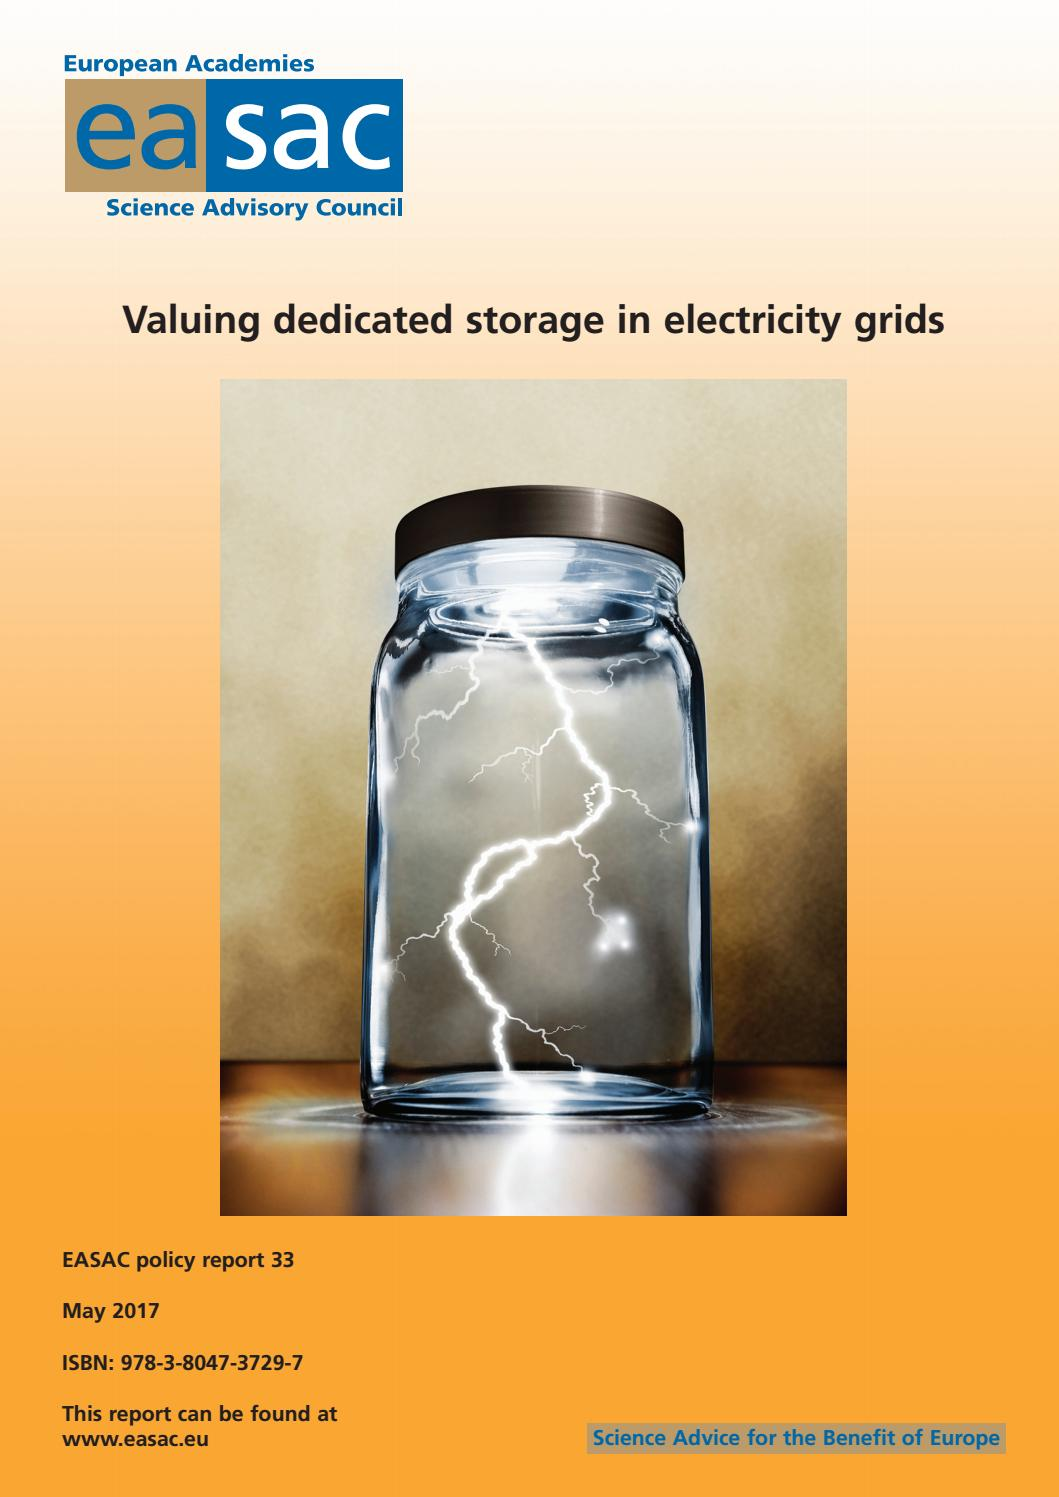 Valuing dedicated storage in electricity grids by EASAC